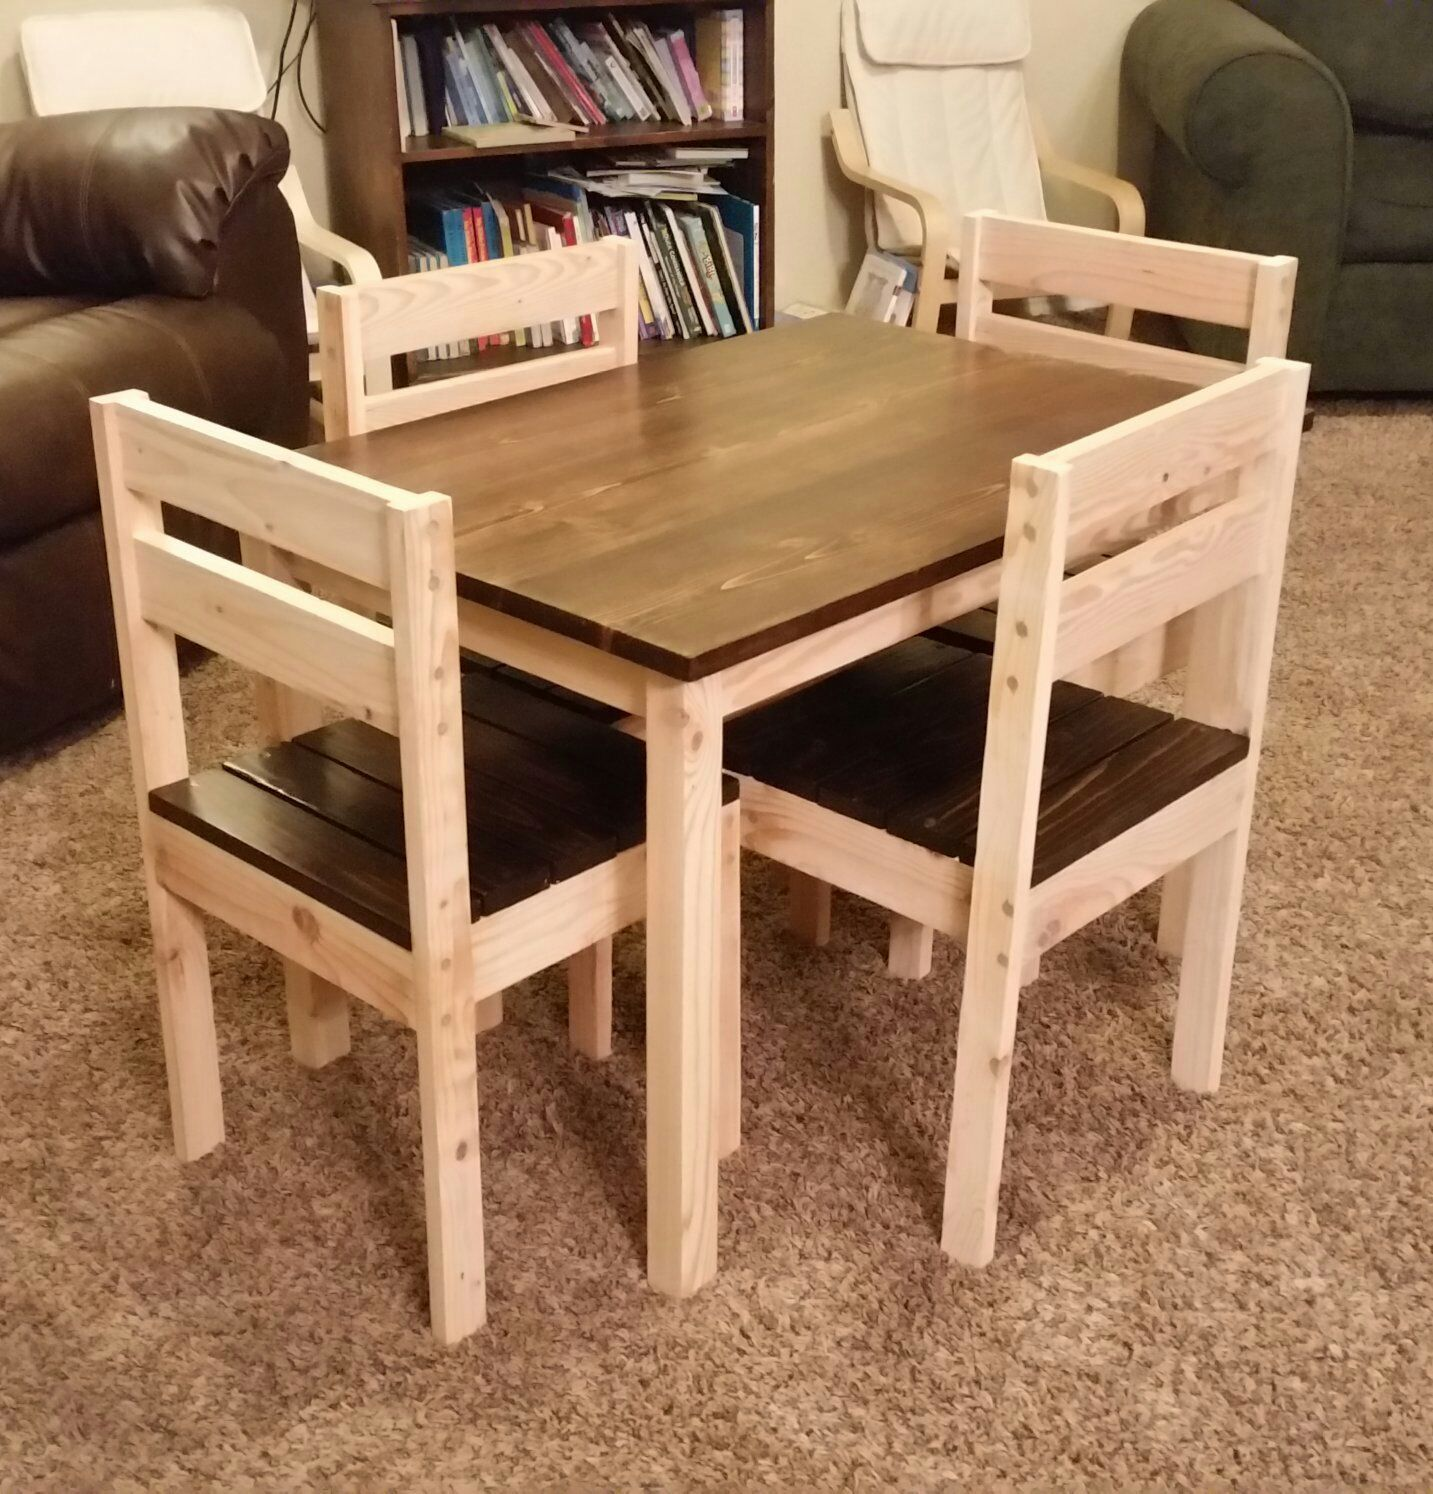 Wooden Table And Chairs Kids Table And Chairs Do It Yourself Home Projects From